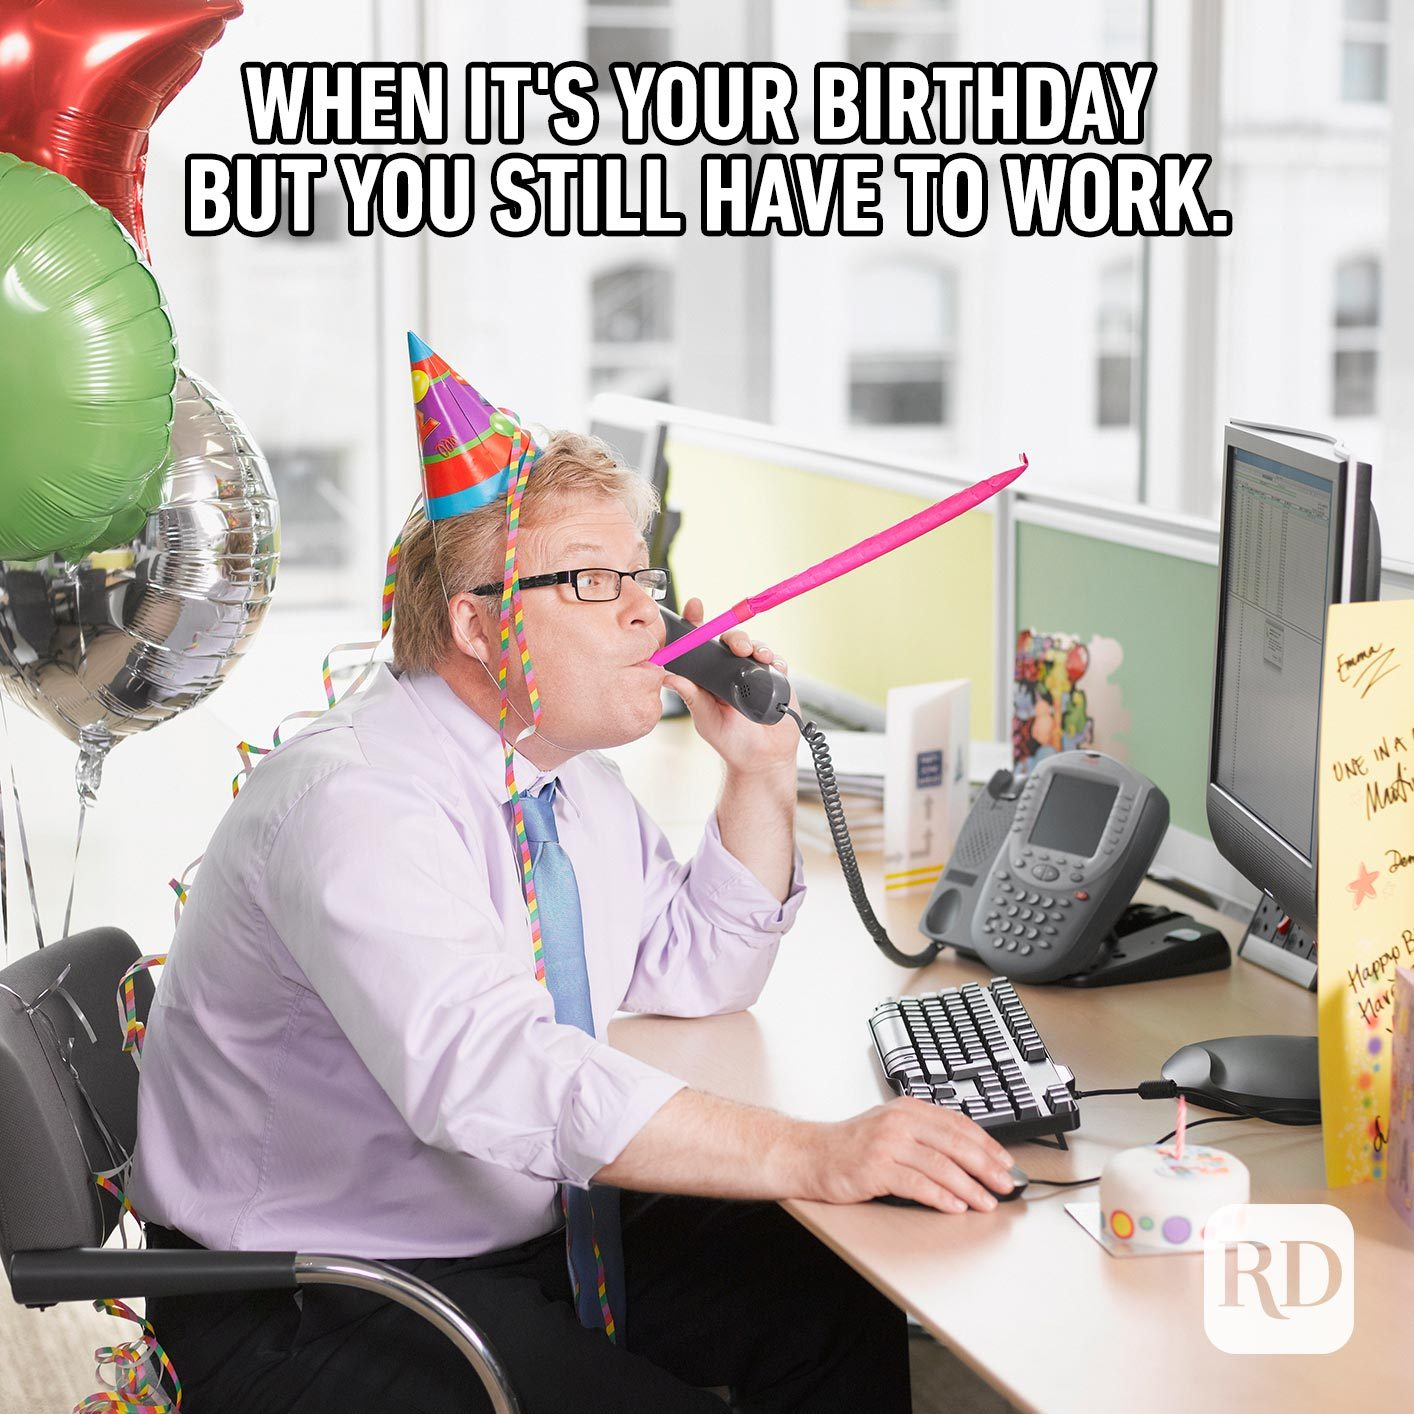 When it's your birthday but you still have to work.